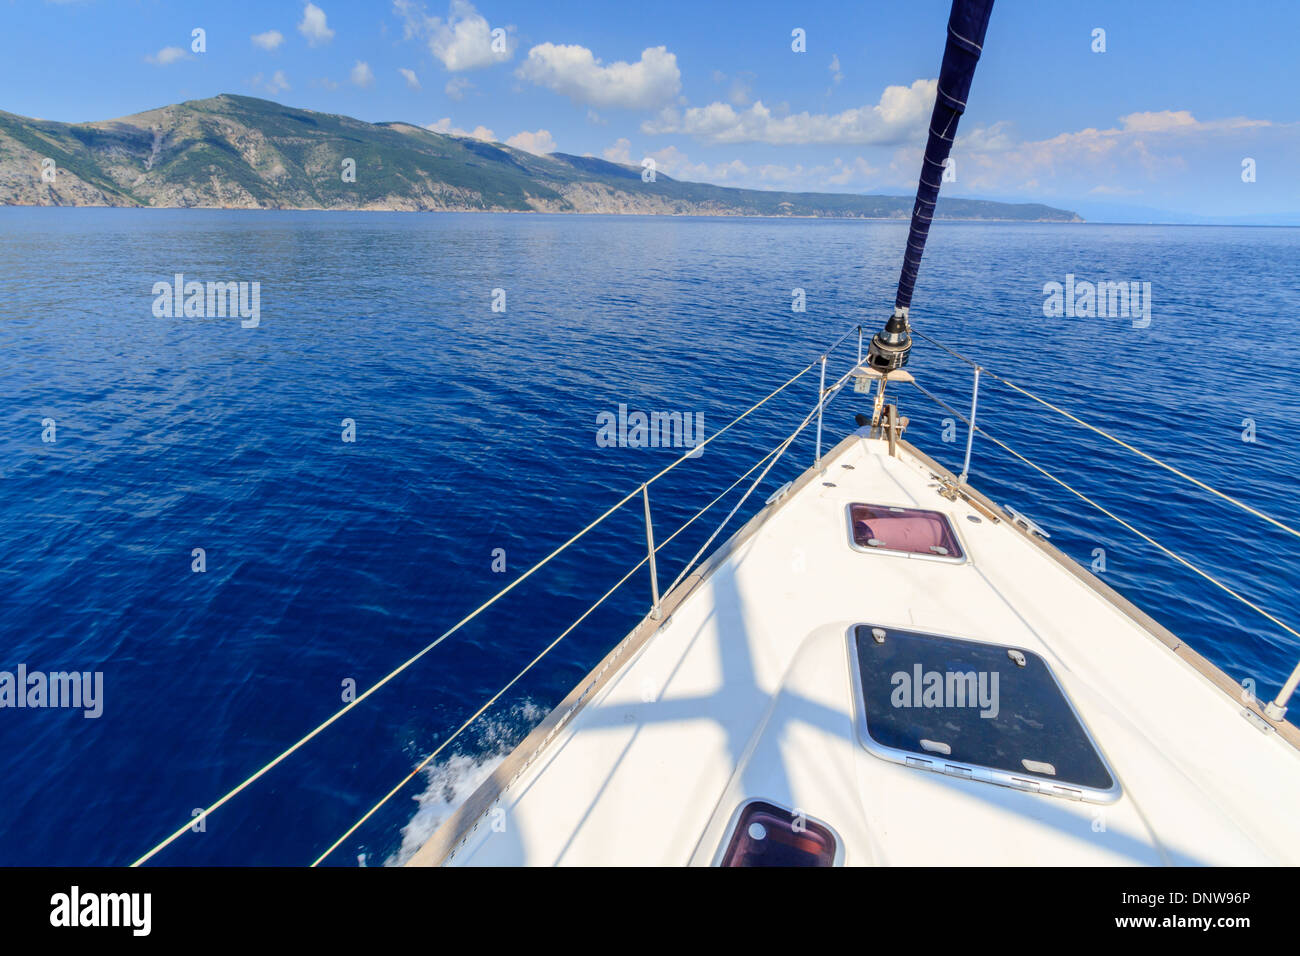 Bow of sailing boat / yacht with blue sea - Stock Image